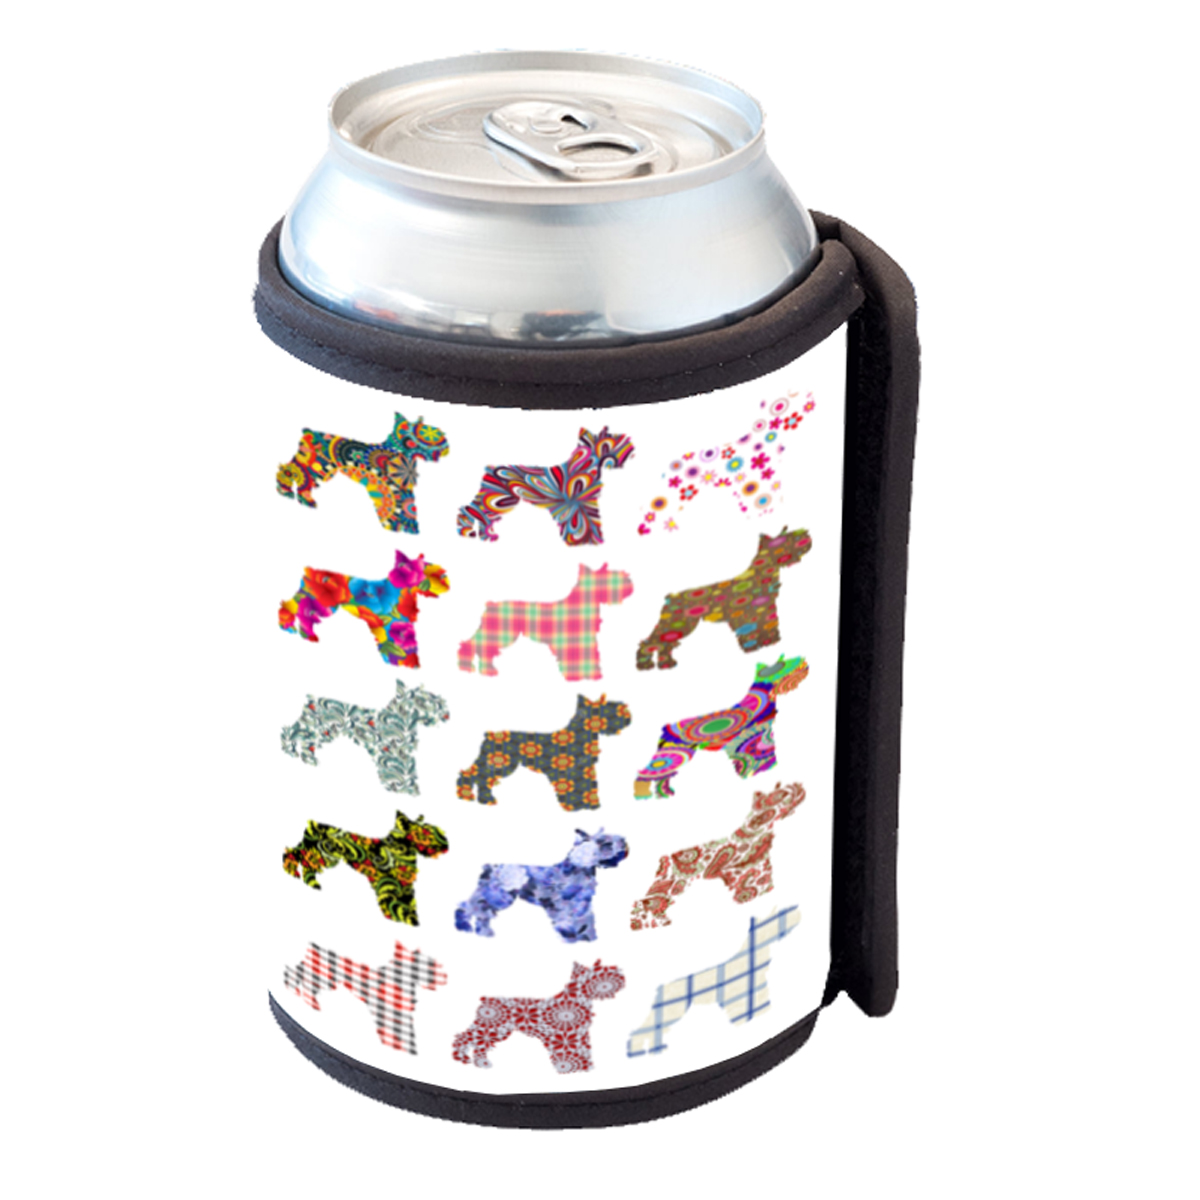 KuzmarK Insulated Drink Can Cooler Hugger - Schnauzer Dog